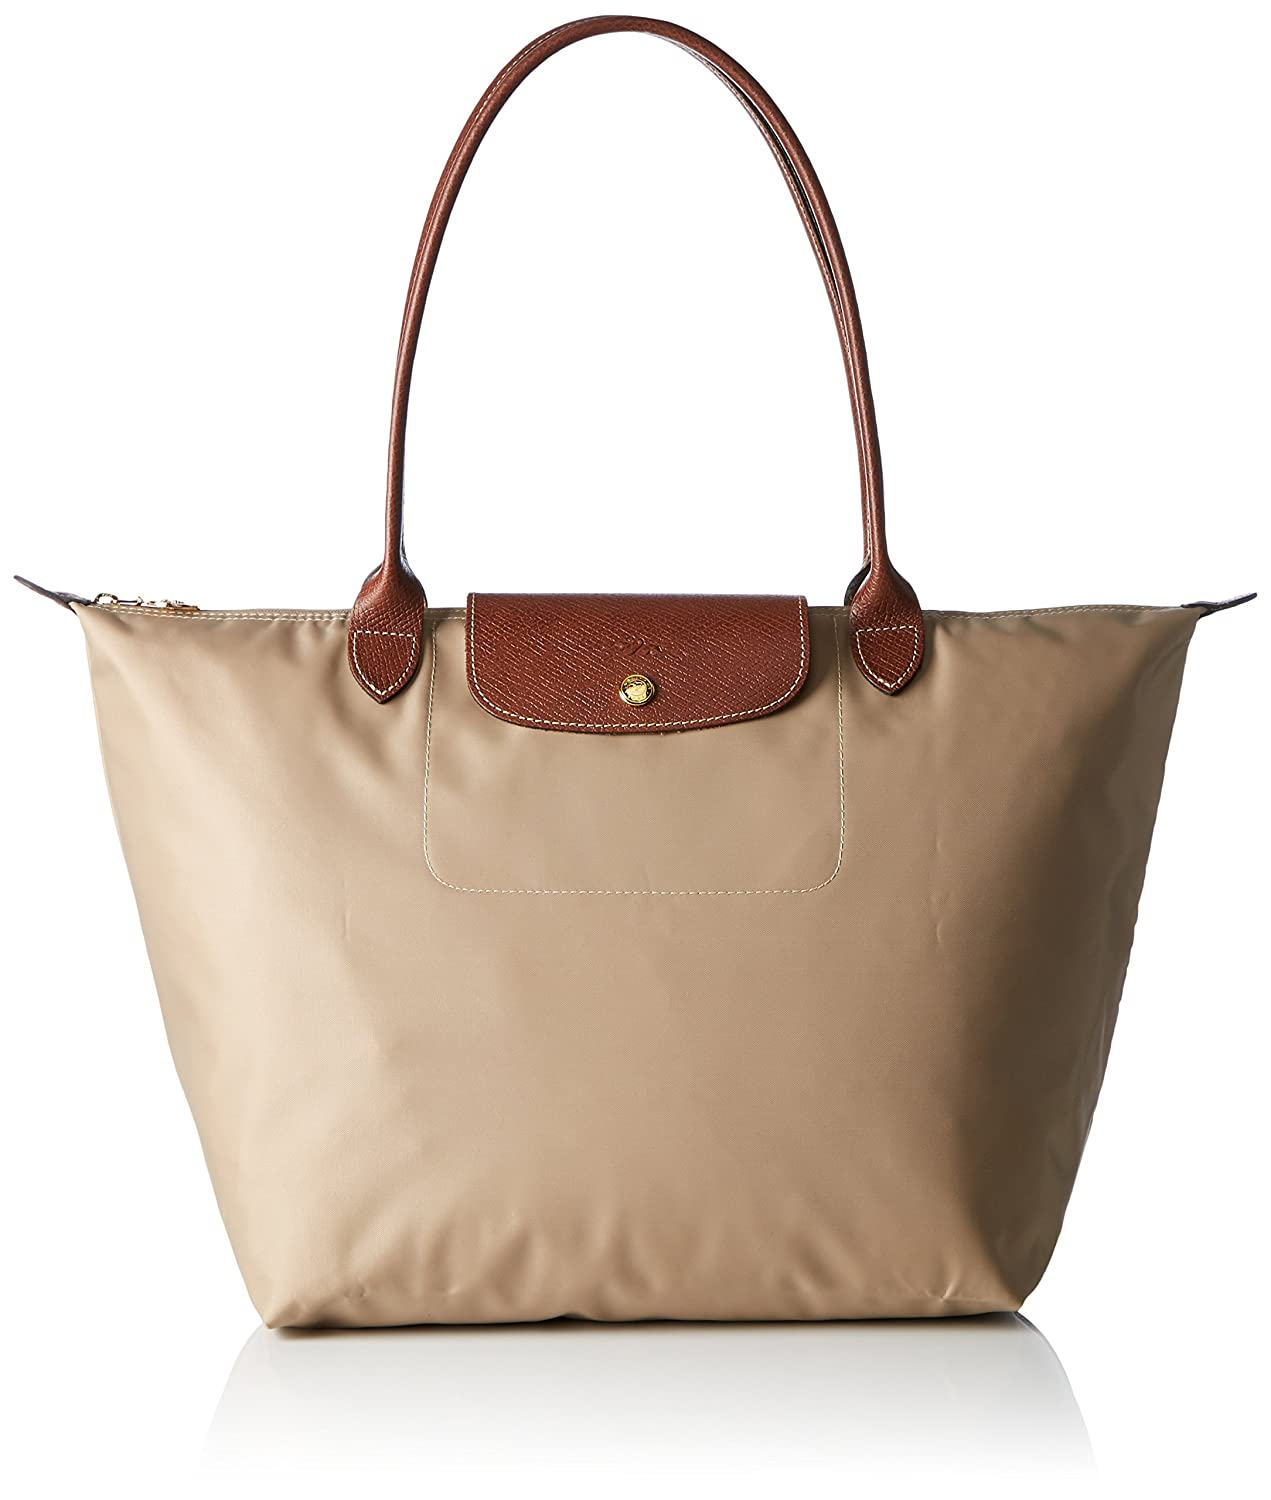 Sac A Main Beige Longchamps : Longchamp handbags